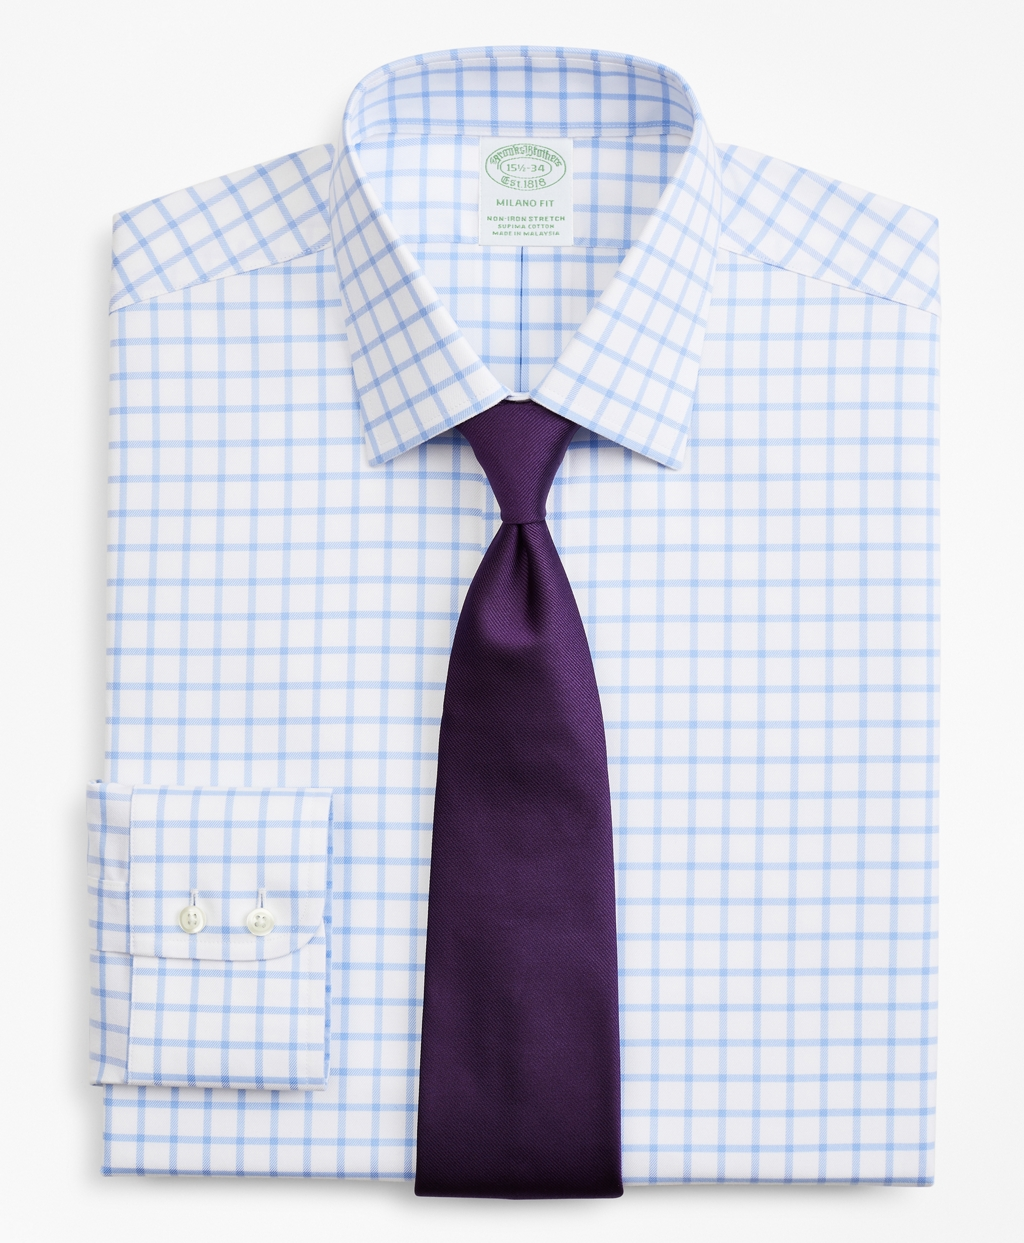 Brooksbrothers Stretch Milano Slim-Fit Dress Shirt, Non-Iron Twill Ainsley Collar Grid Check